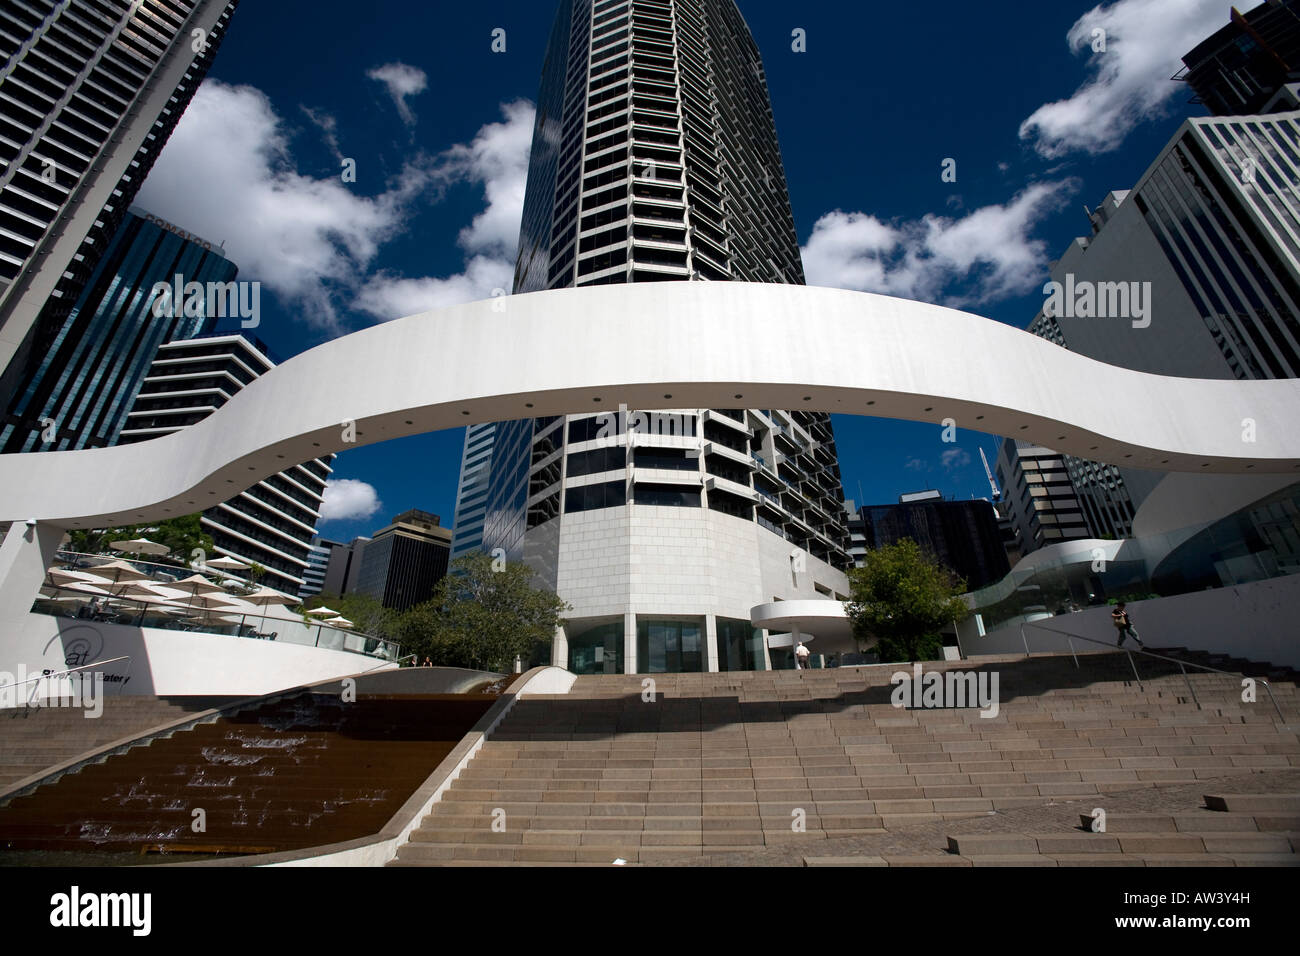 brisbane riverside centre and office buildings and modern architecture,queensland - Stock Image